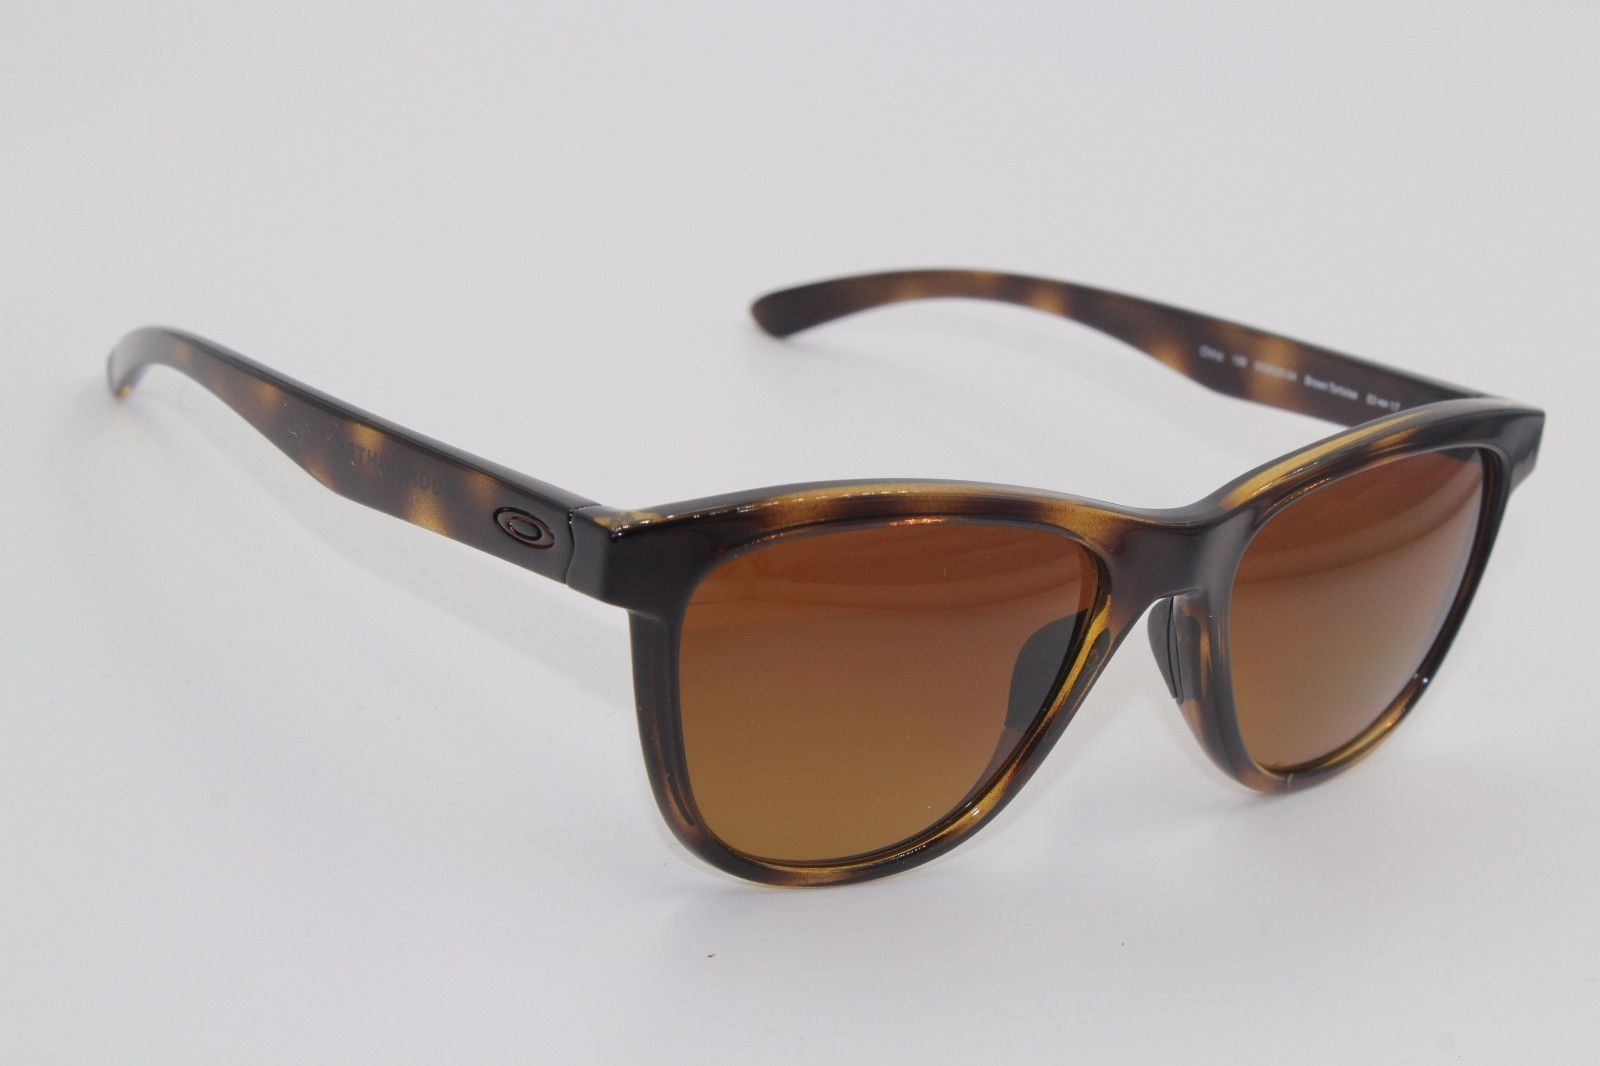 3fa27ab4471 S l1600. S l1600. Previous. NEW OAKLEY OO9320-04 TORTOISE MOONLIGHTER  POLARIZED AUTHENTIC SUNGLASSES ...